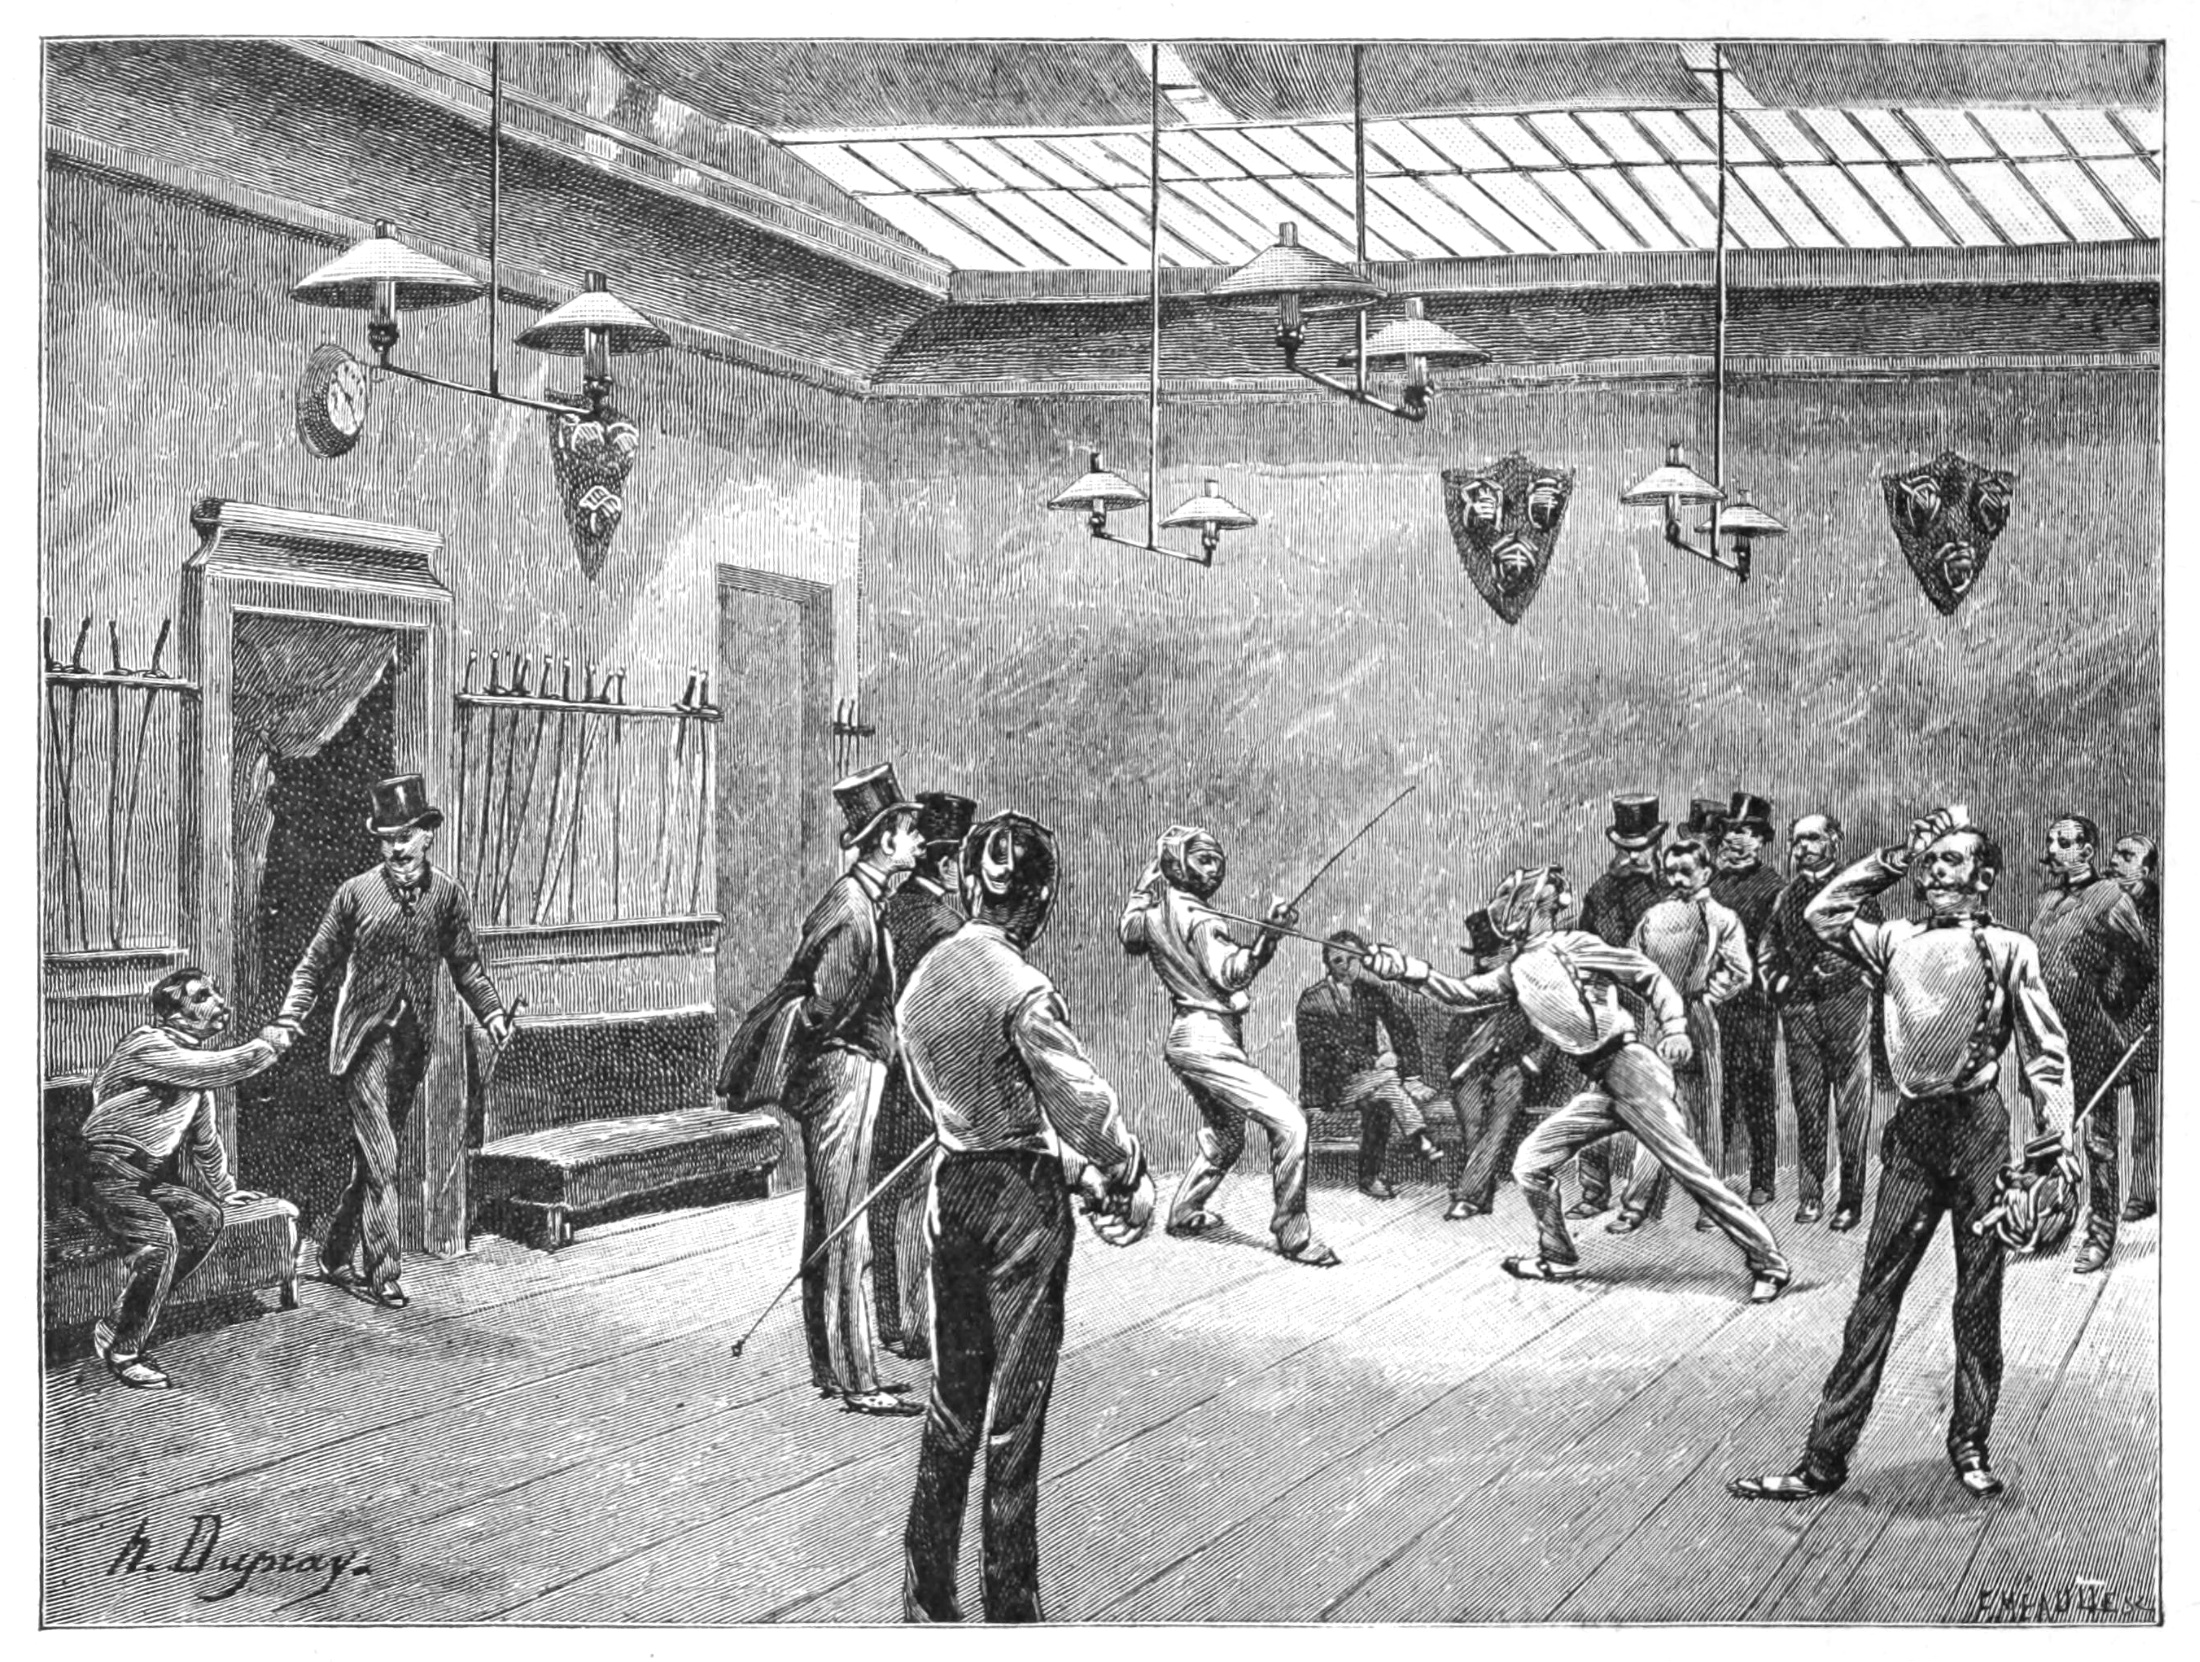 File:Fencing-Room in Paris 1887.jpg